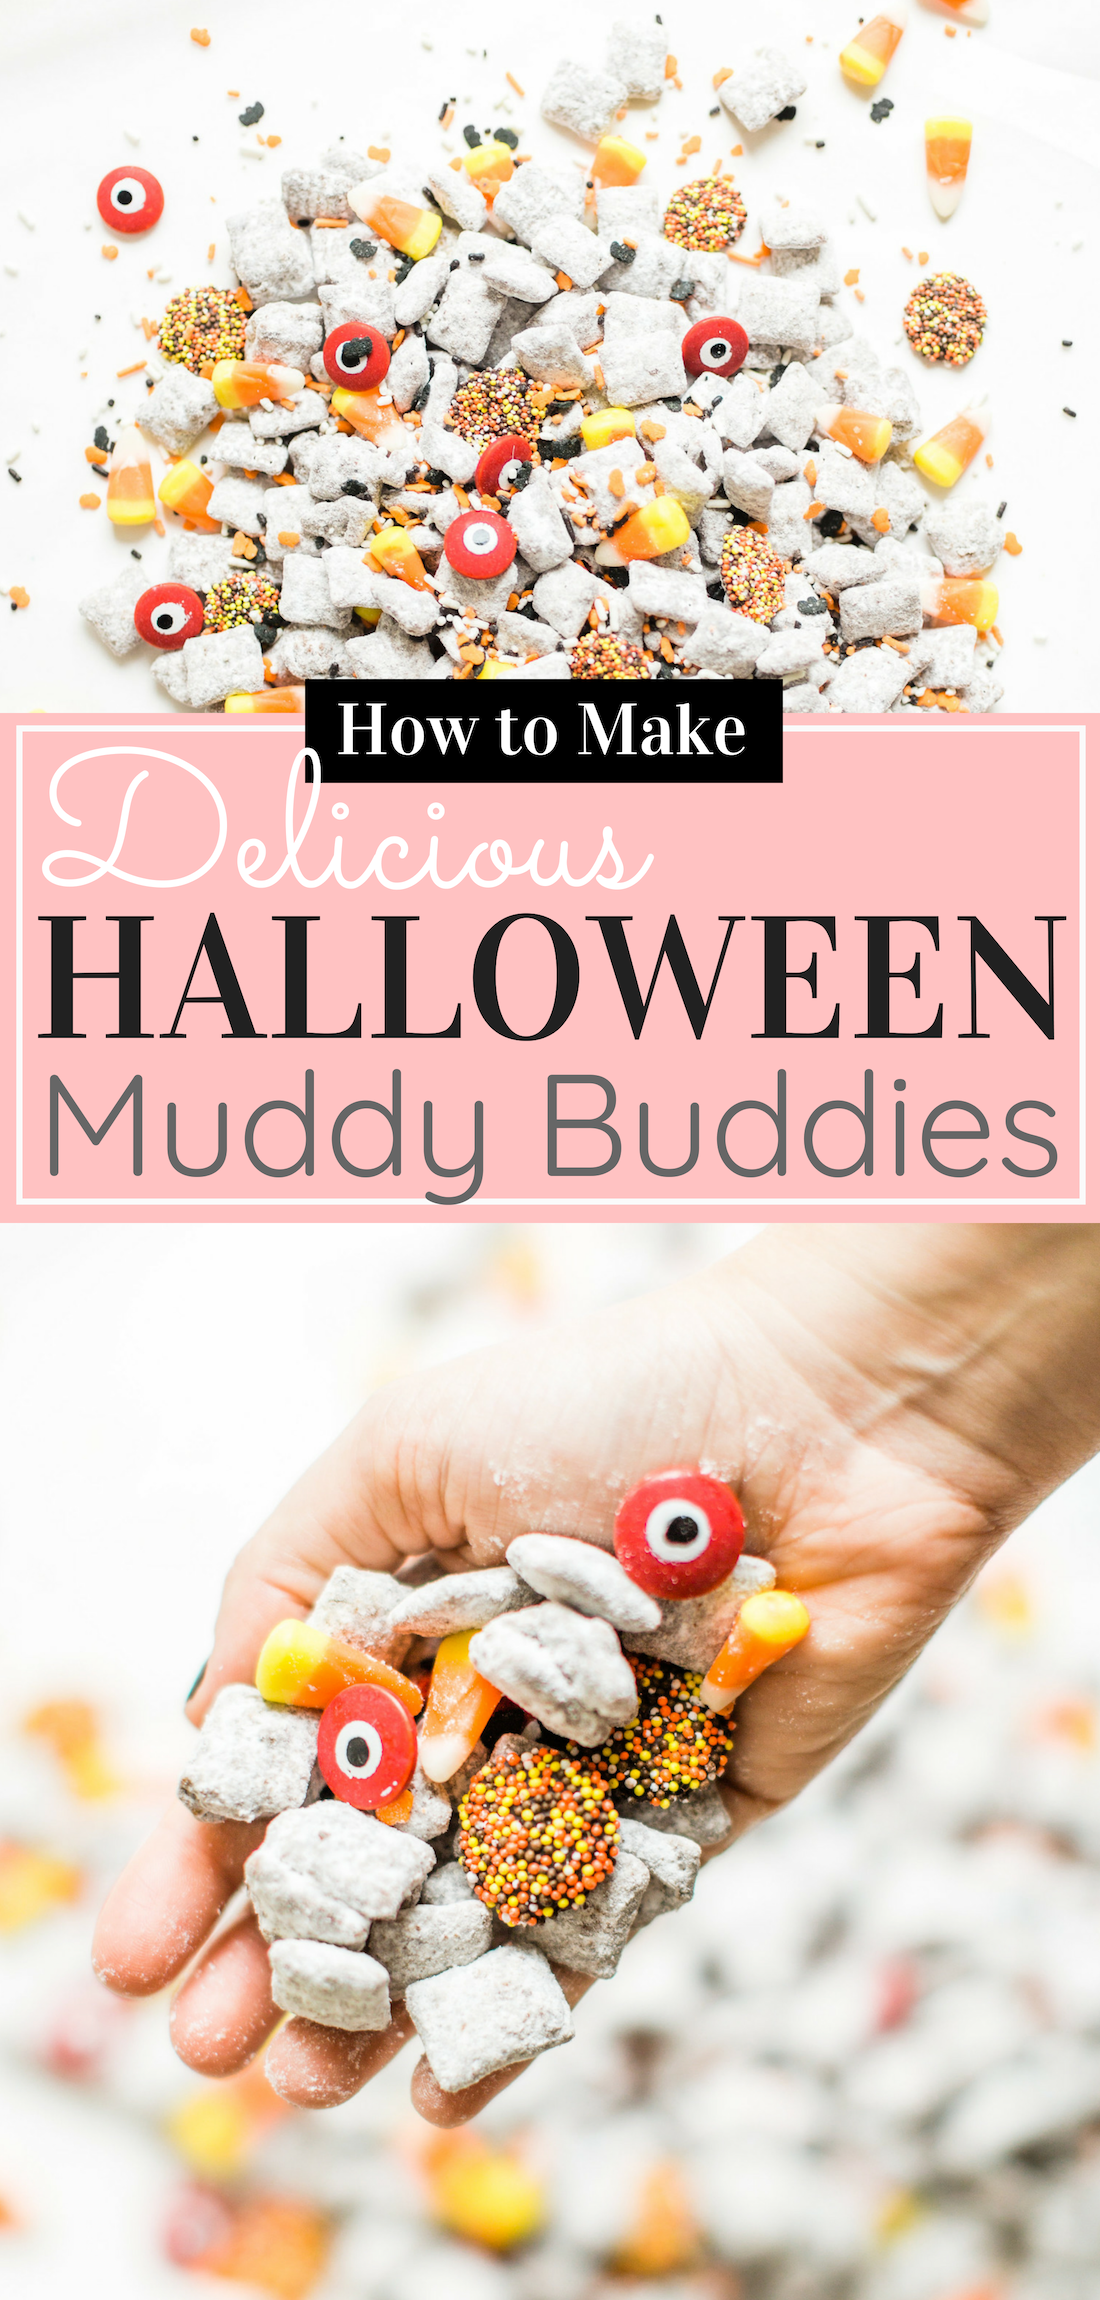 We turned classic - and delicious - Muddy Buddies; a.k.a., Puppy Chow, into a spooky treat; the perfect dessert for your next haunted Halloween party! Click through for the recipe. #halloween #halloweendessert #halloweencandy #halloweentreat #puppychow #halloweenpuppychow #muddybuddies #halloweenmuddybuddies | glitterinc.com | @glitterinc